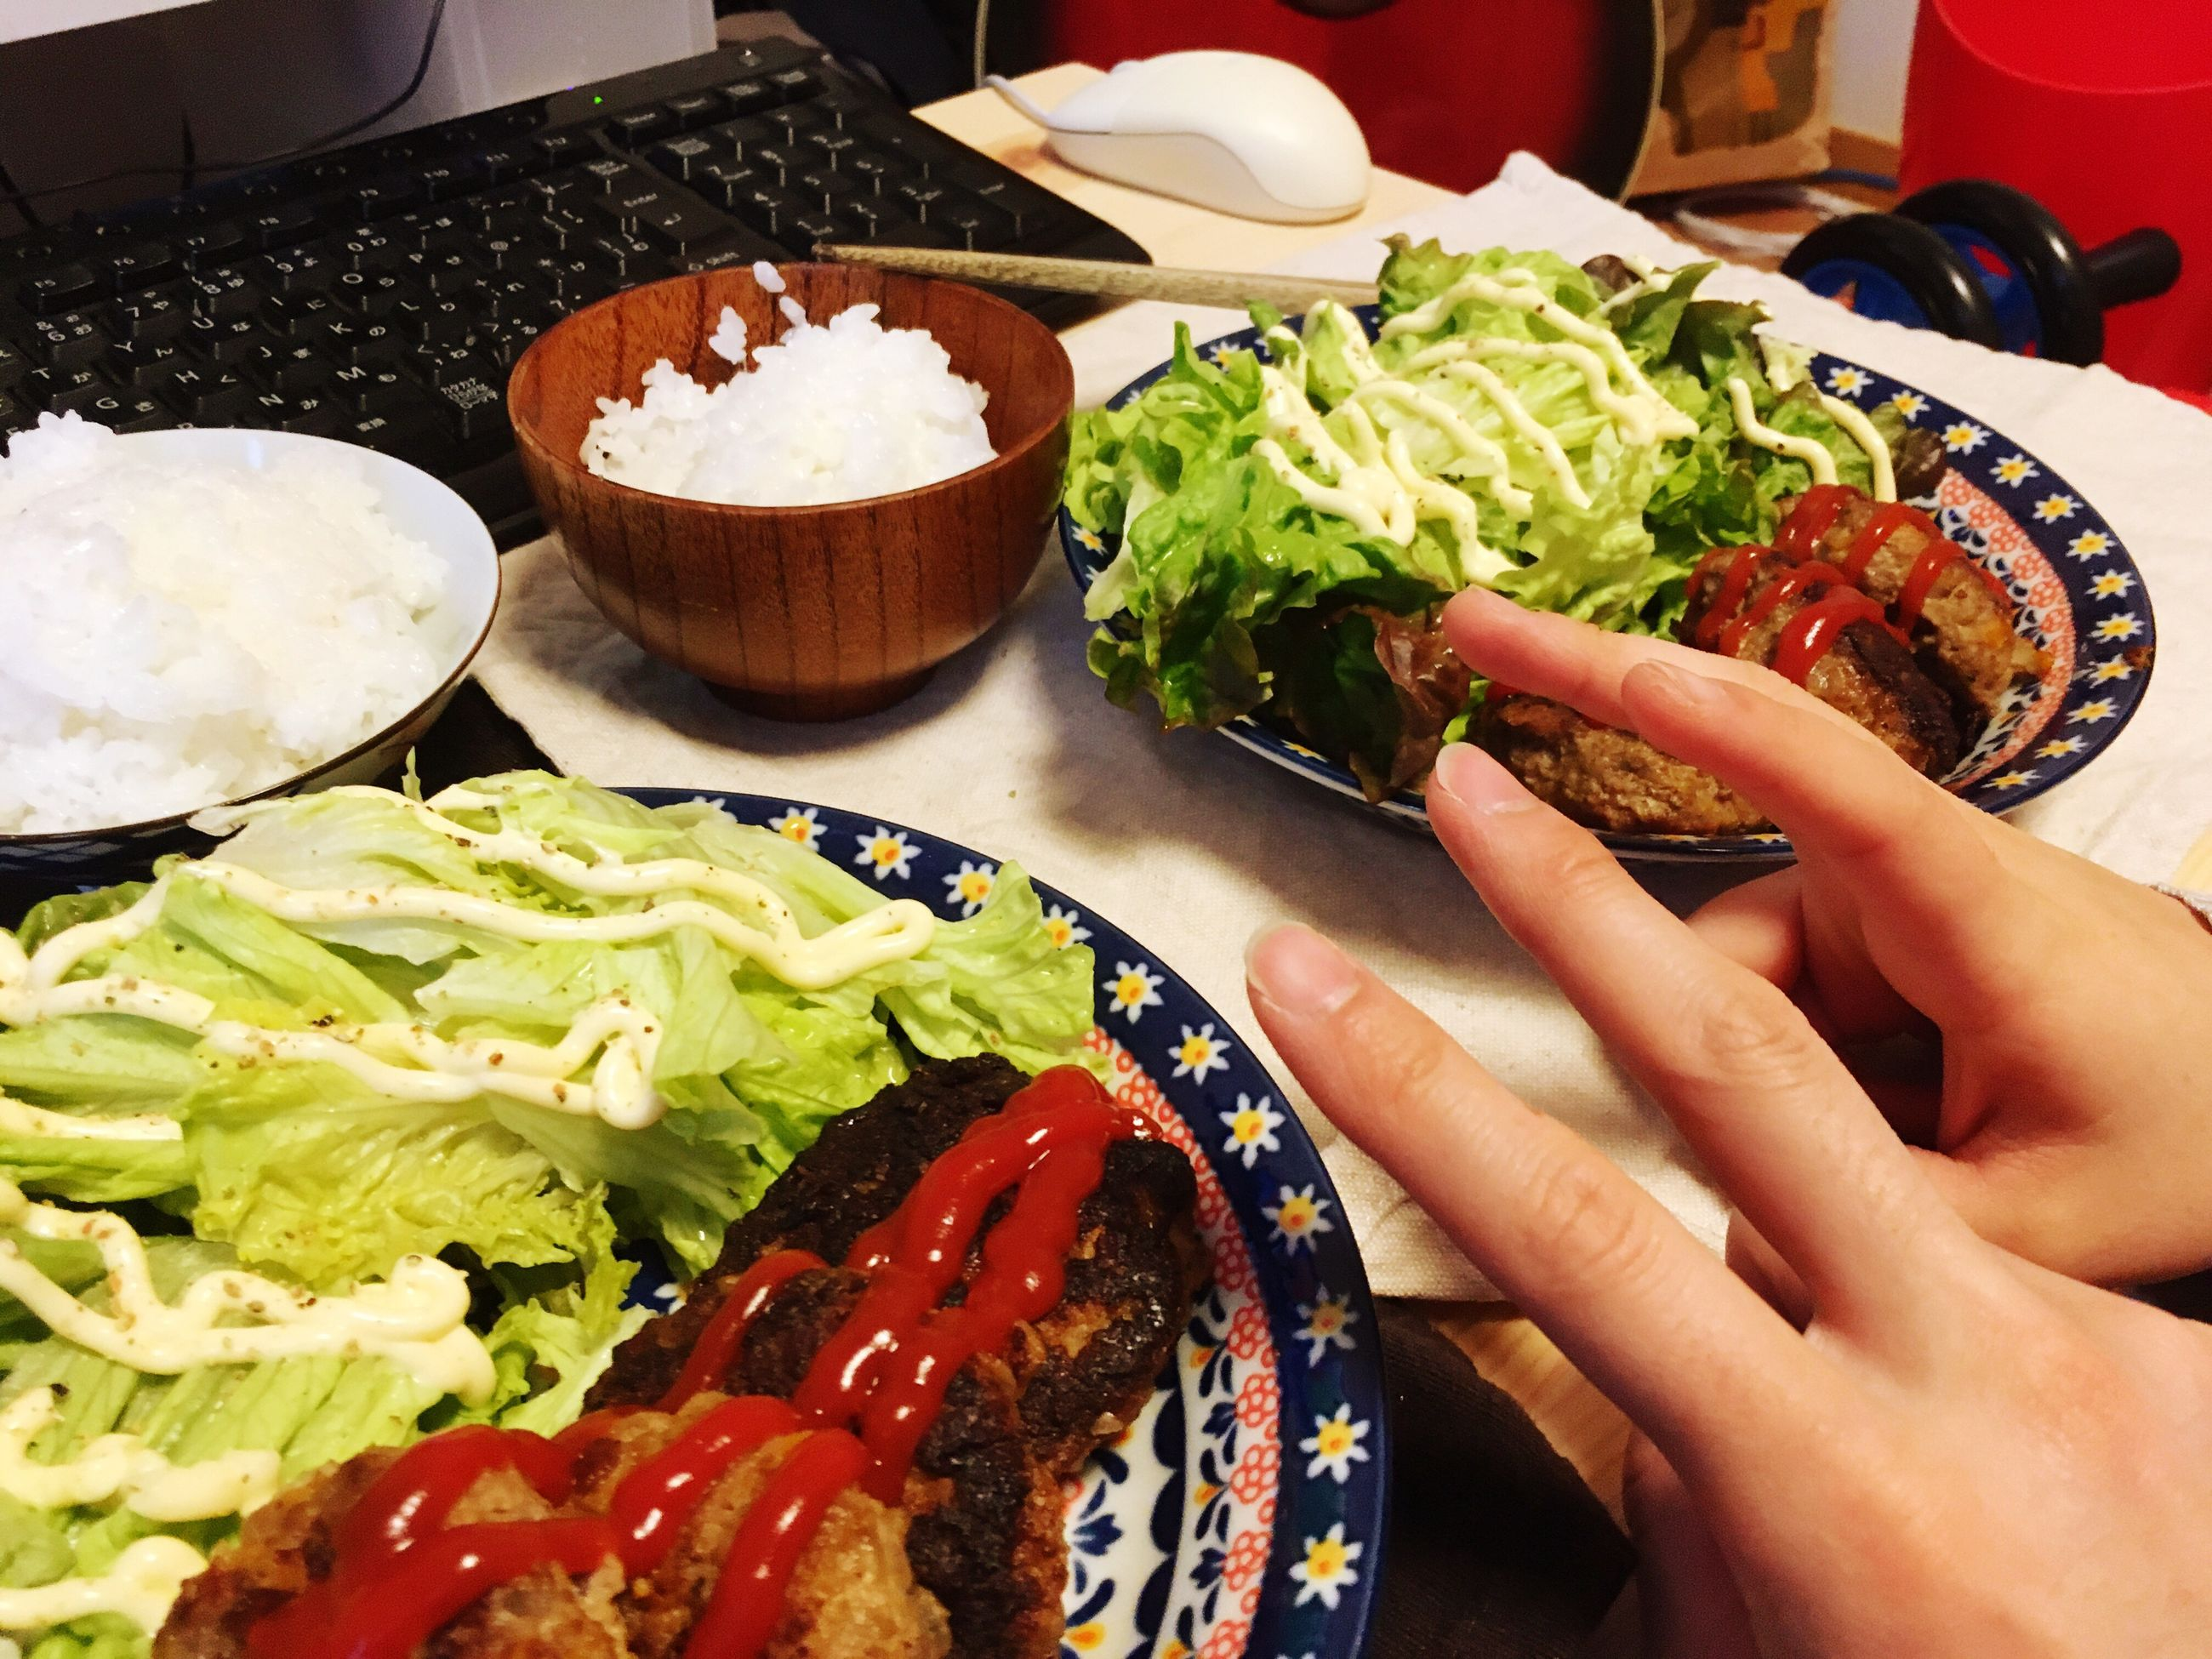 food and drink, freshness, food, human hand, human body part, meal, dairy product, ready-to-eat, women, healthy lifestyle, healthy eating, temptation, men, garnish, serving size, adult, plate, adults only, bowl, indoors, close-up, people, one person, salad bowl, day